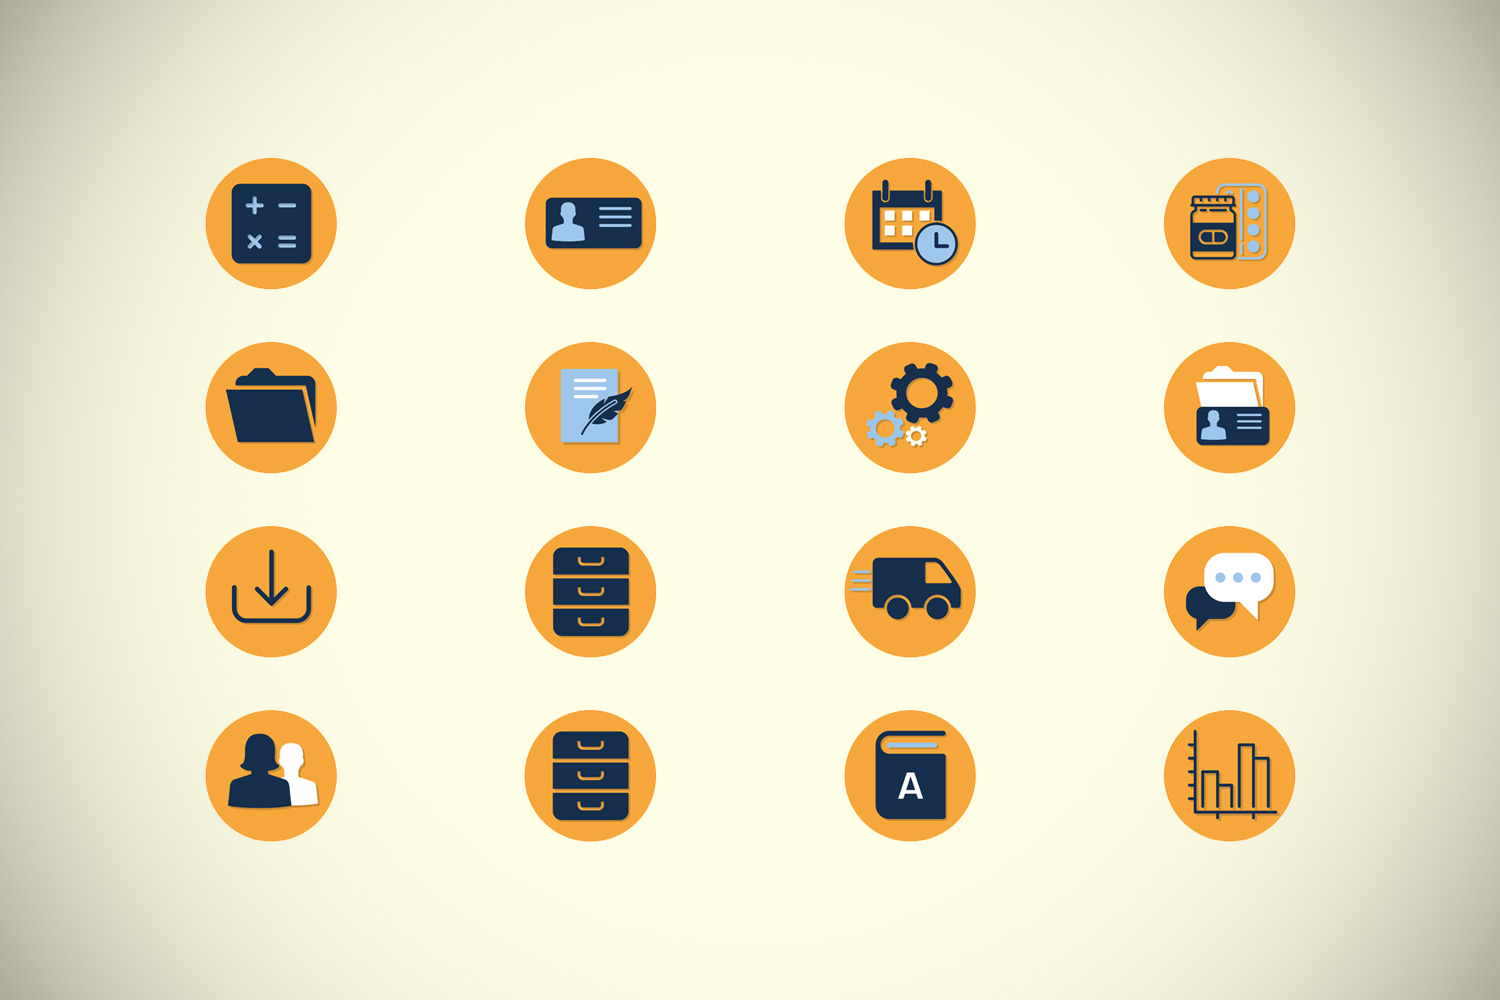 YES! creative digital marketing client ametiq community ui/ux design icons